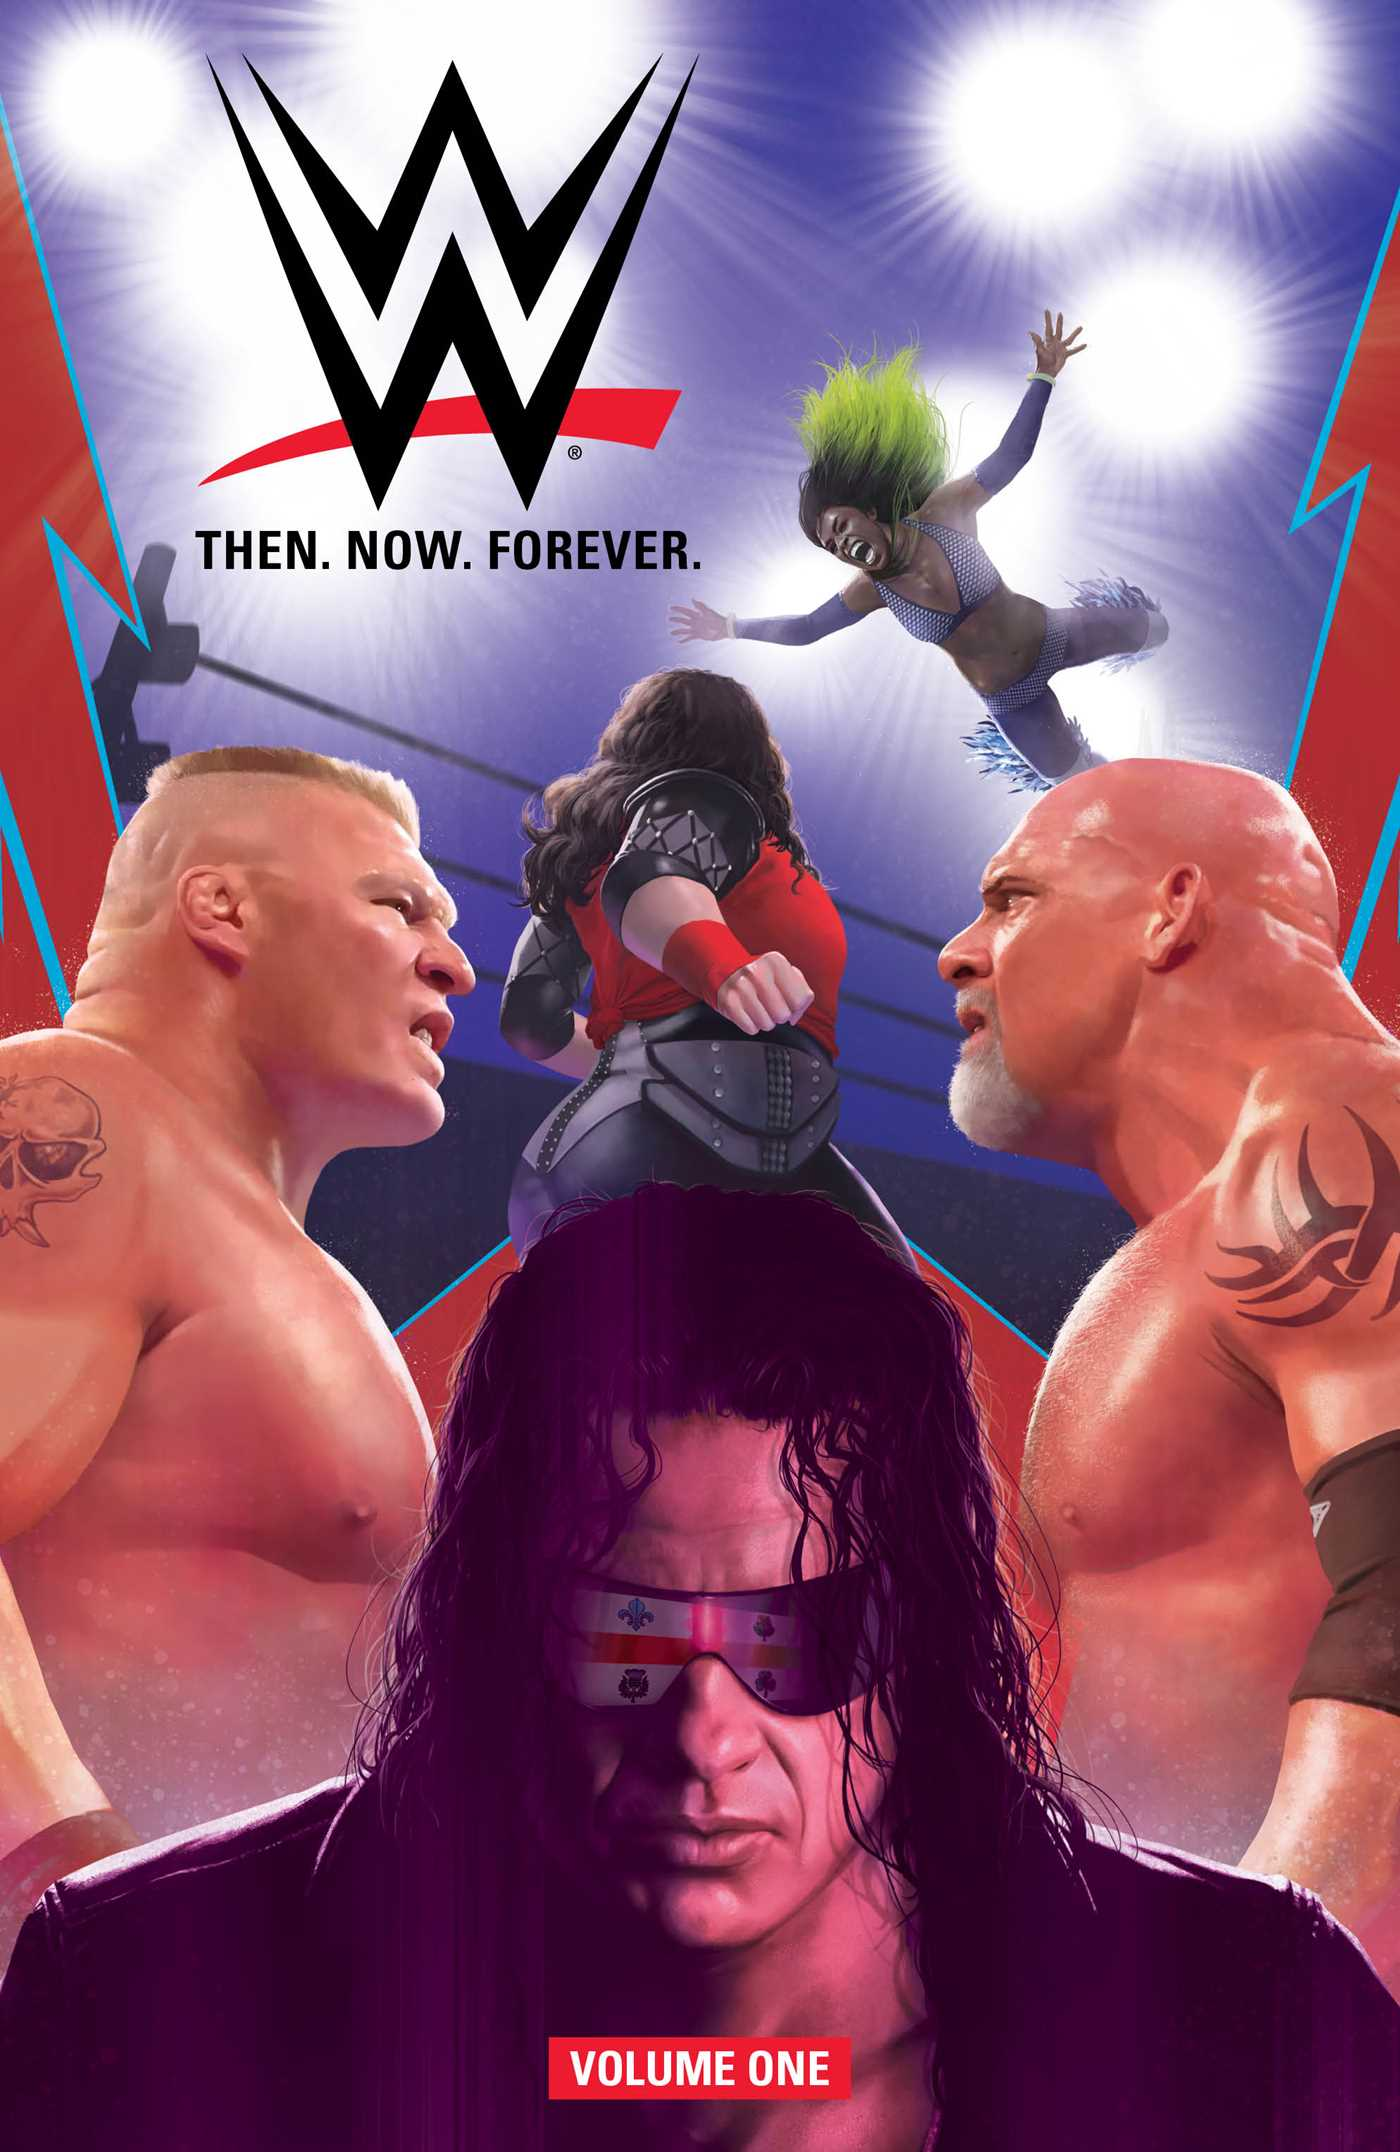 Wwe then now forever vol 1 9781684151288 hr